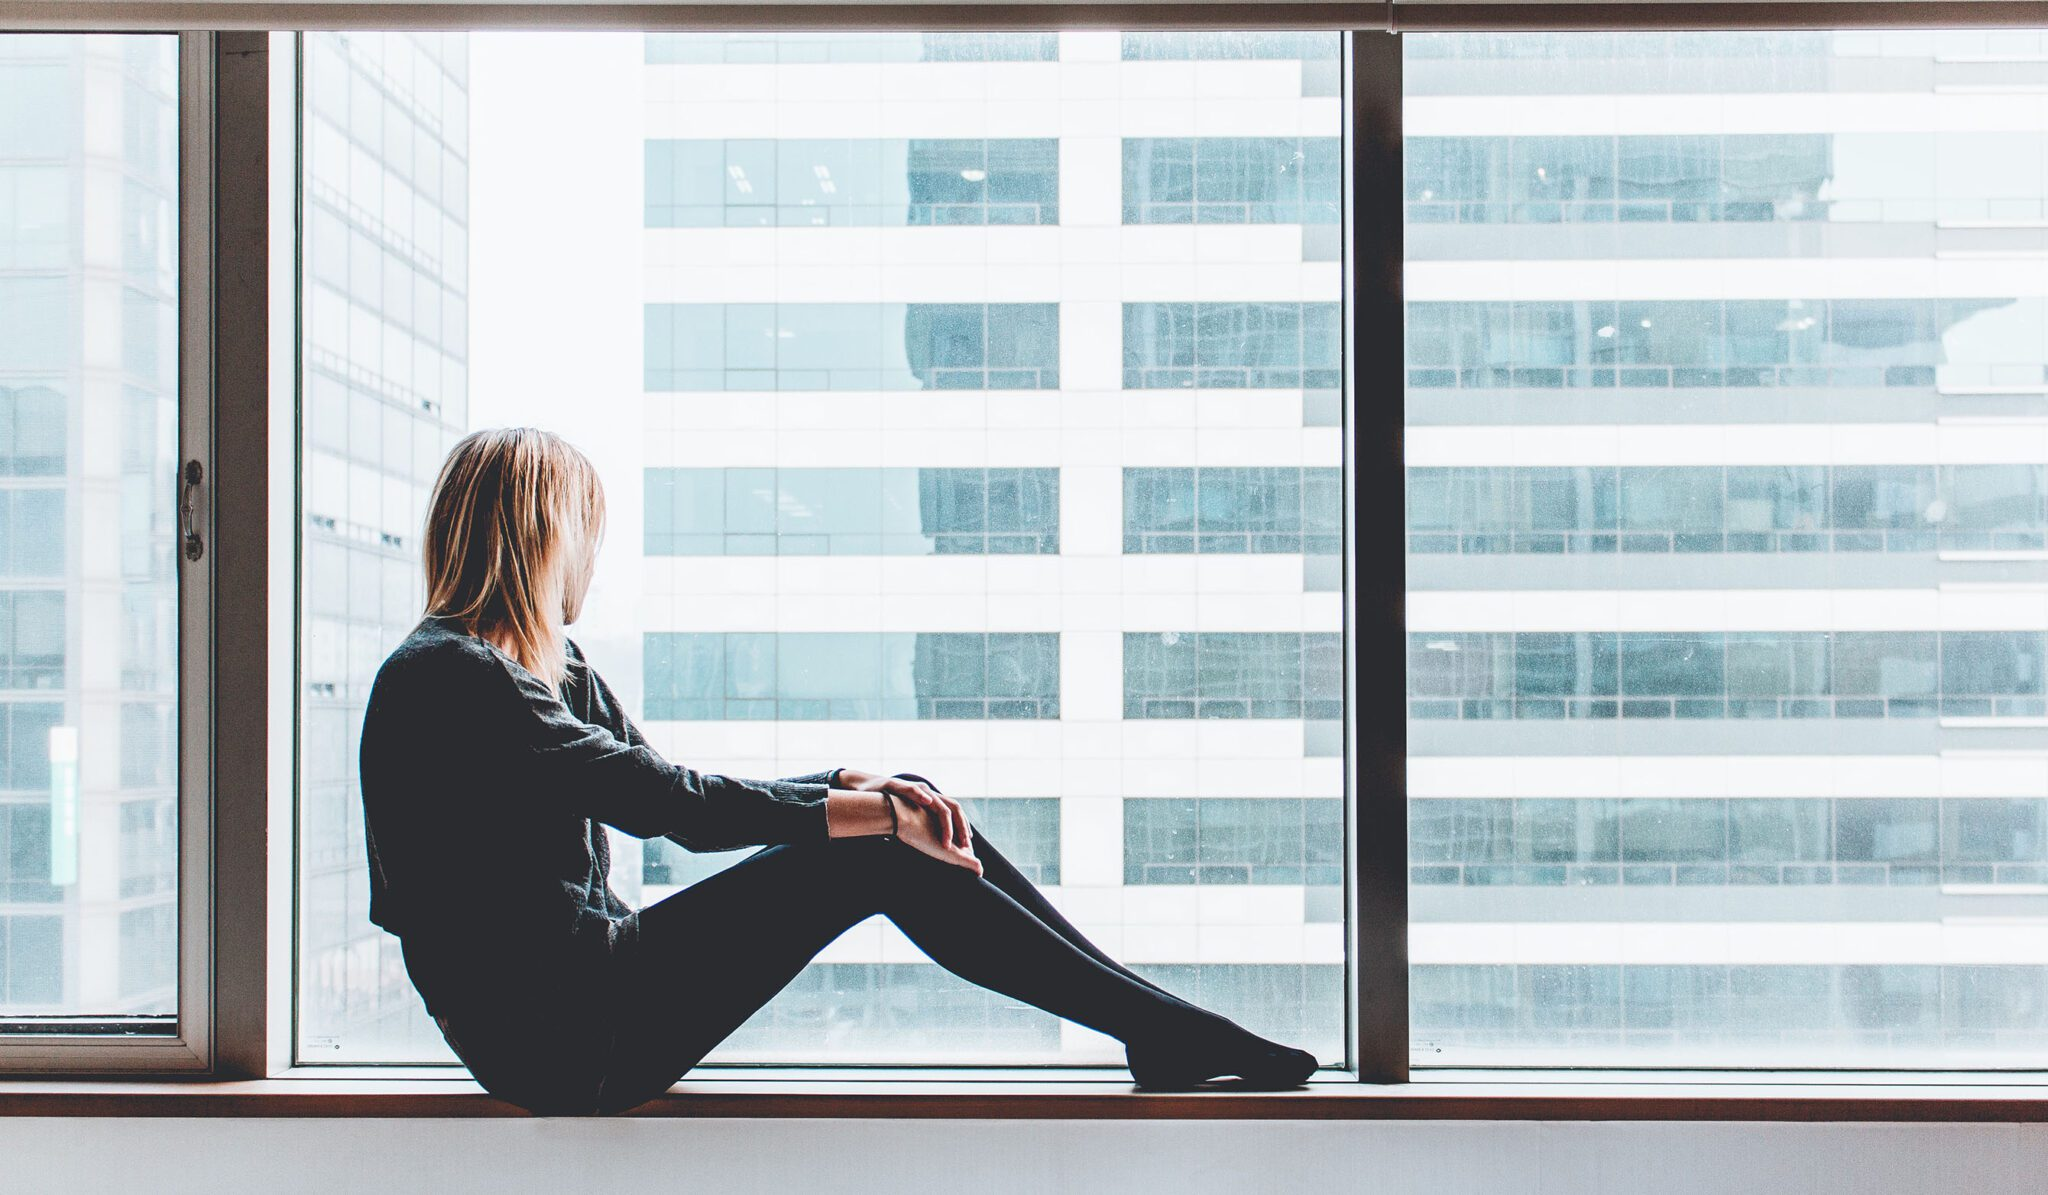 woman considering an at-home fertility test while staring out the window